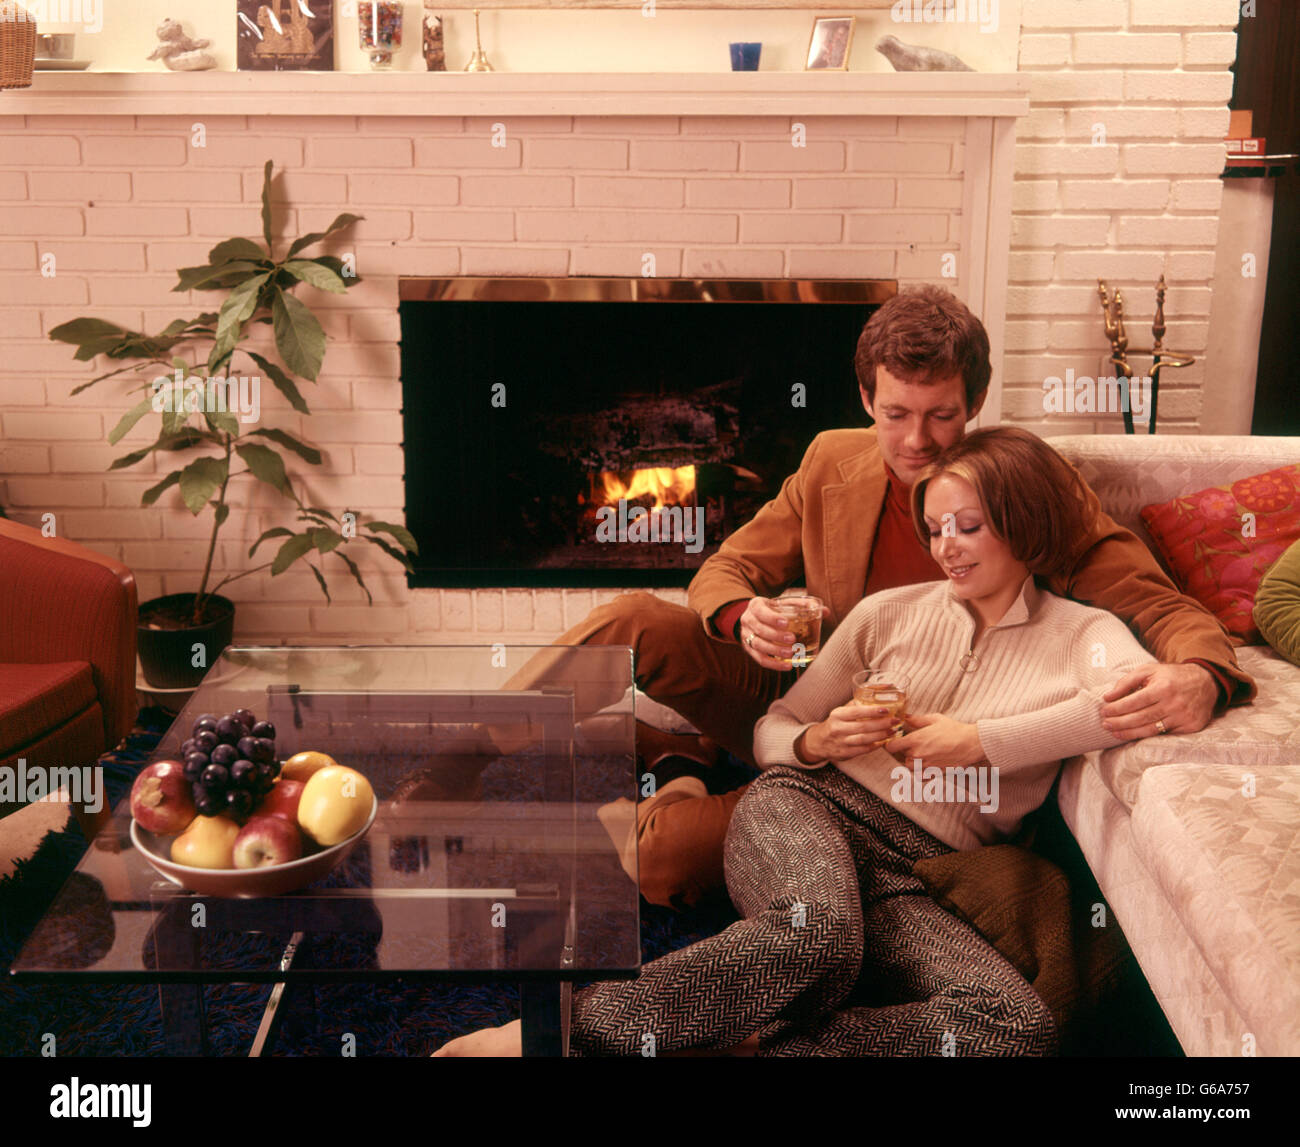 1970s ROMANTIC COUPLE MAN AND WOMAN HAVING DRINKS BY FIREPLACE SITTING ON FLOOR - Stock Image